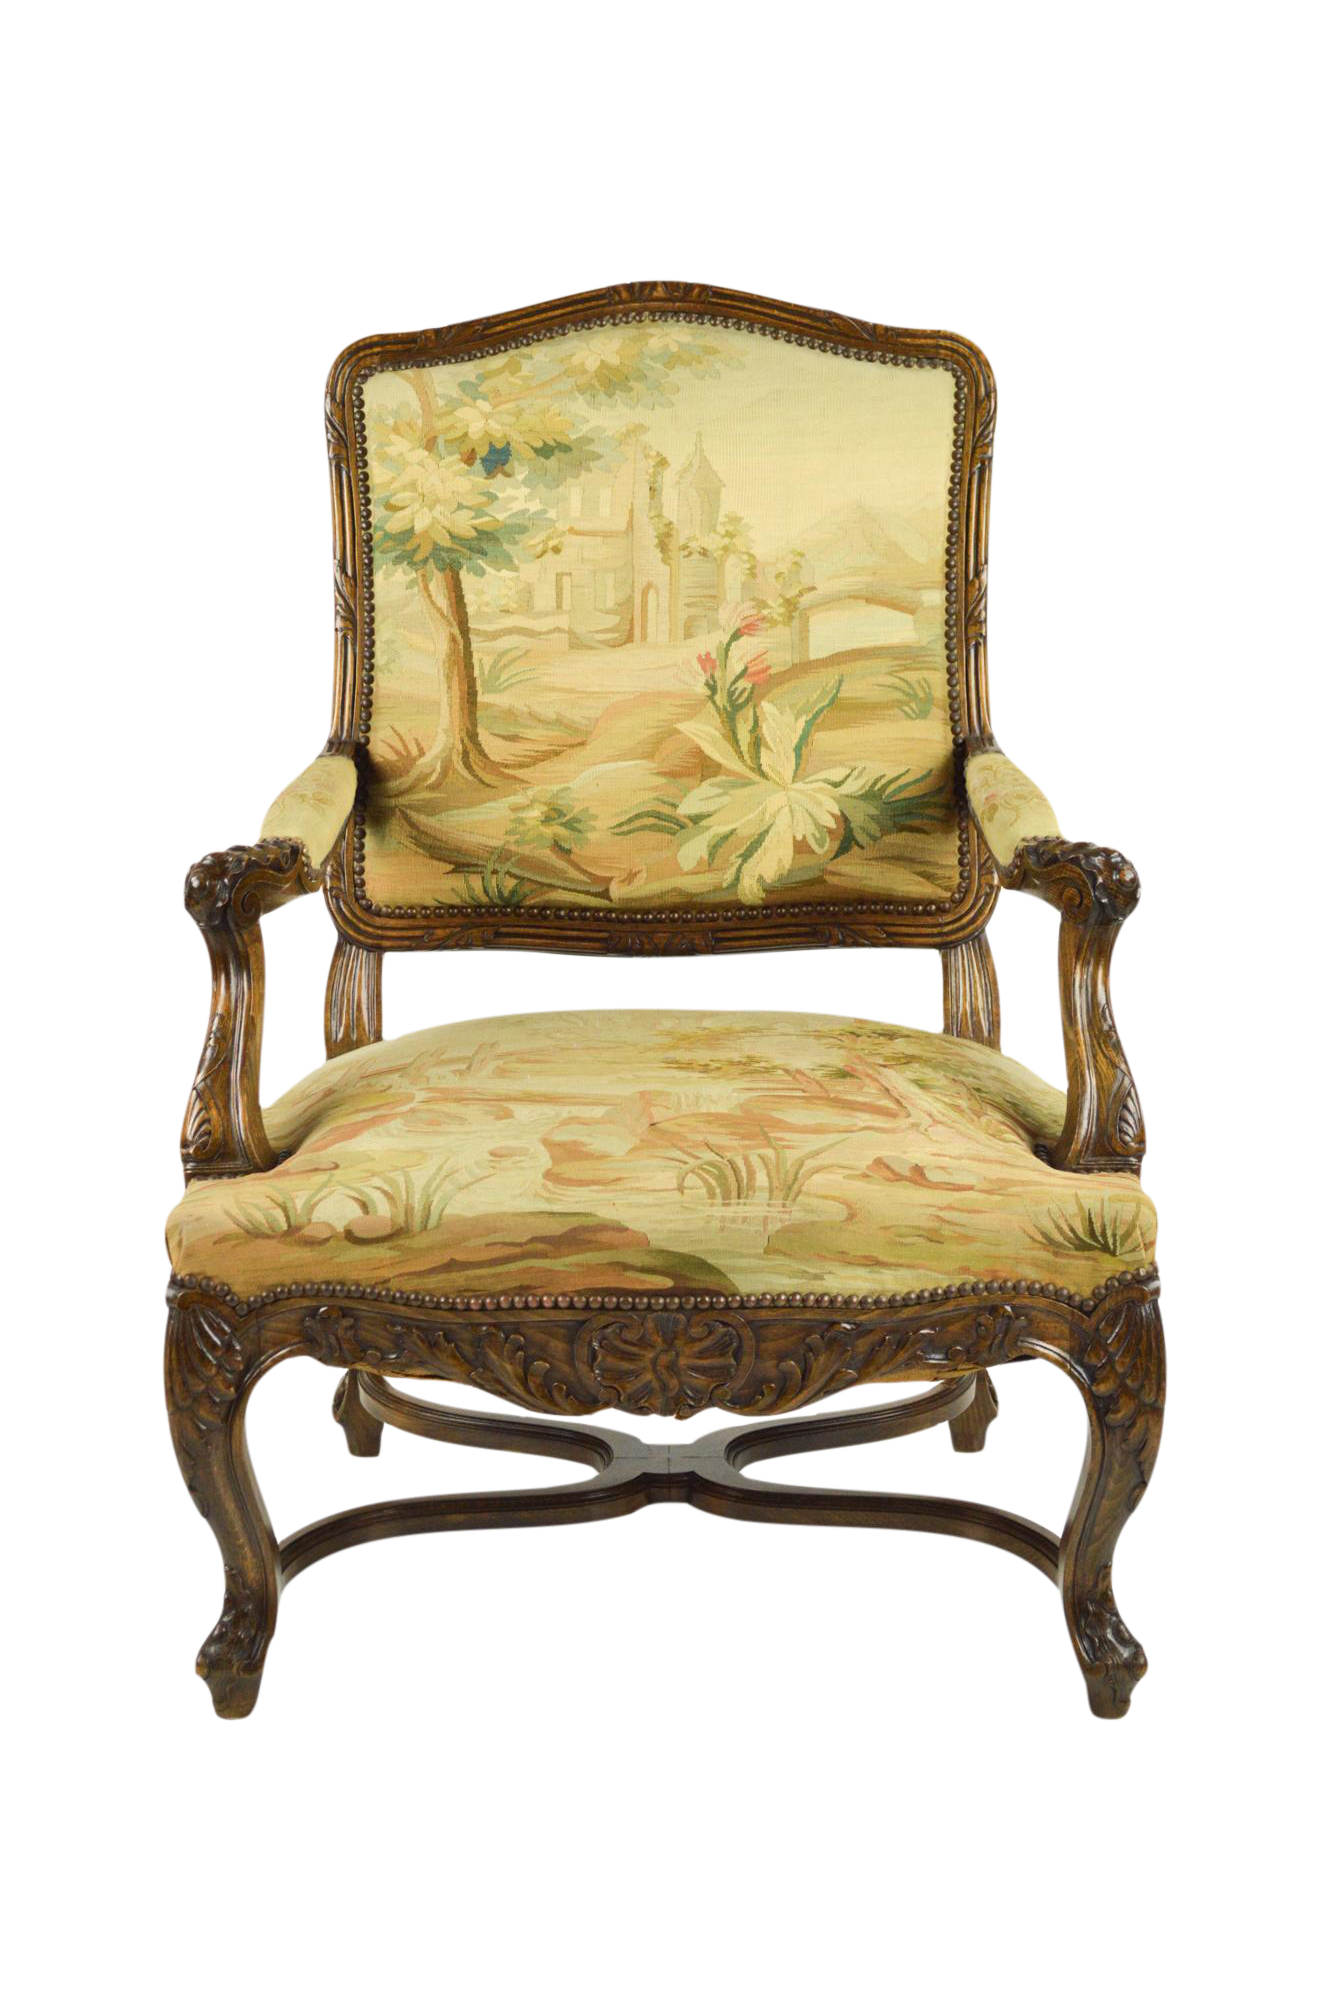 Antique french chair - Image Of Antique Carved French Chair With Aubusson Tapestry